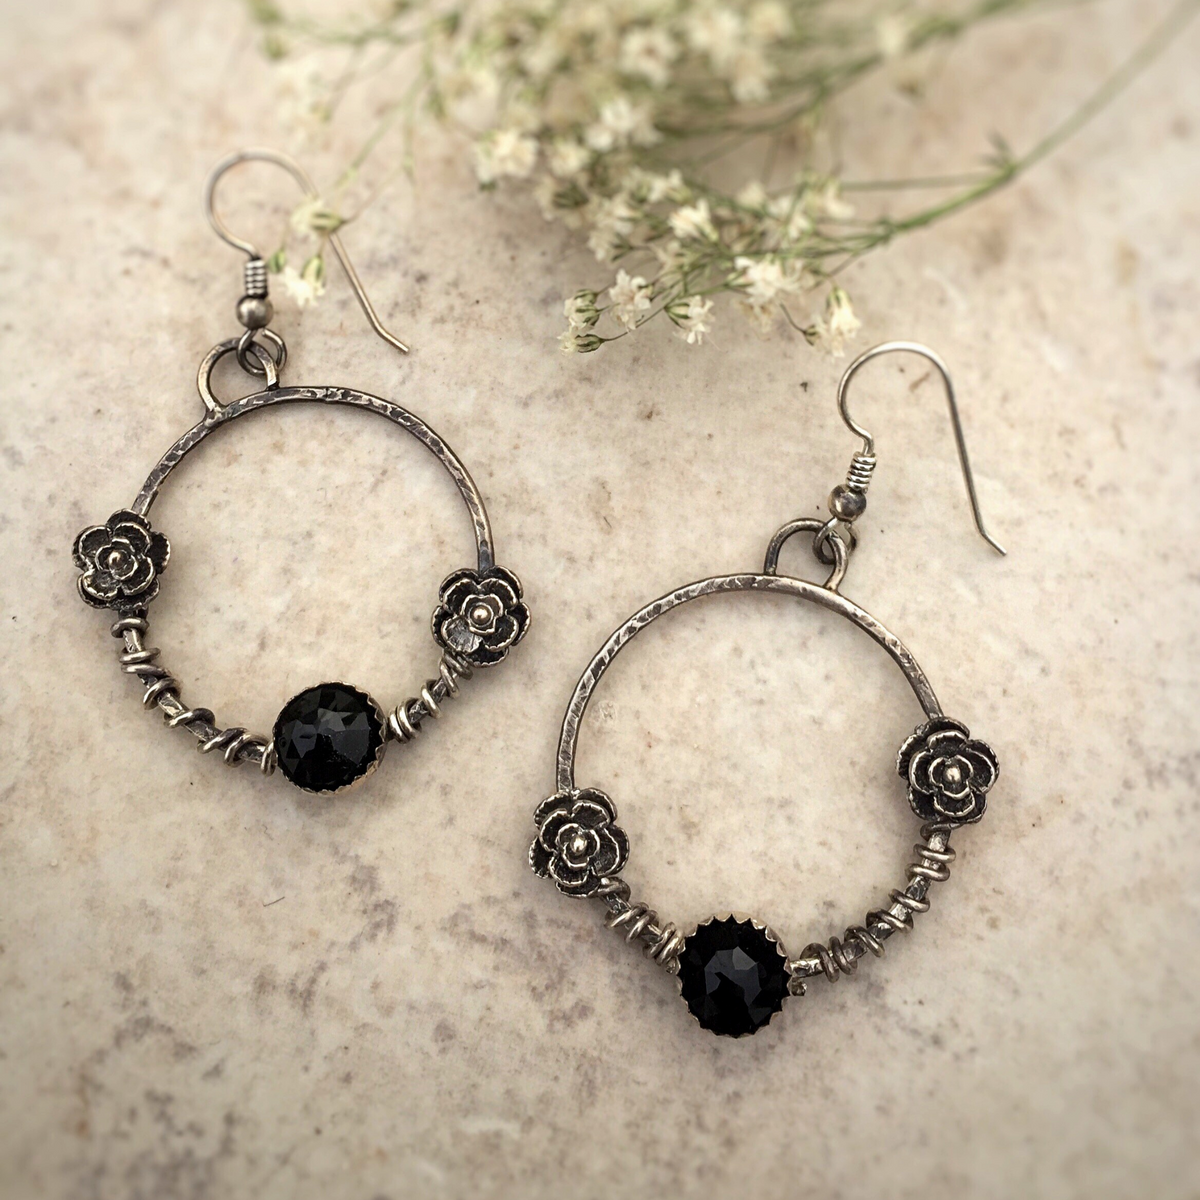 Bonfire Design Black Onyx Flower Hoop Earrings with vine